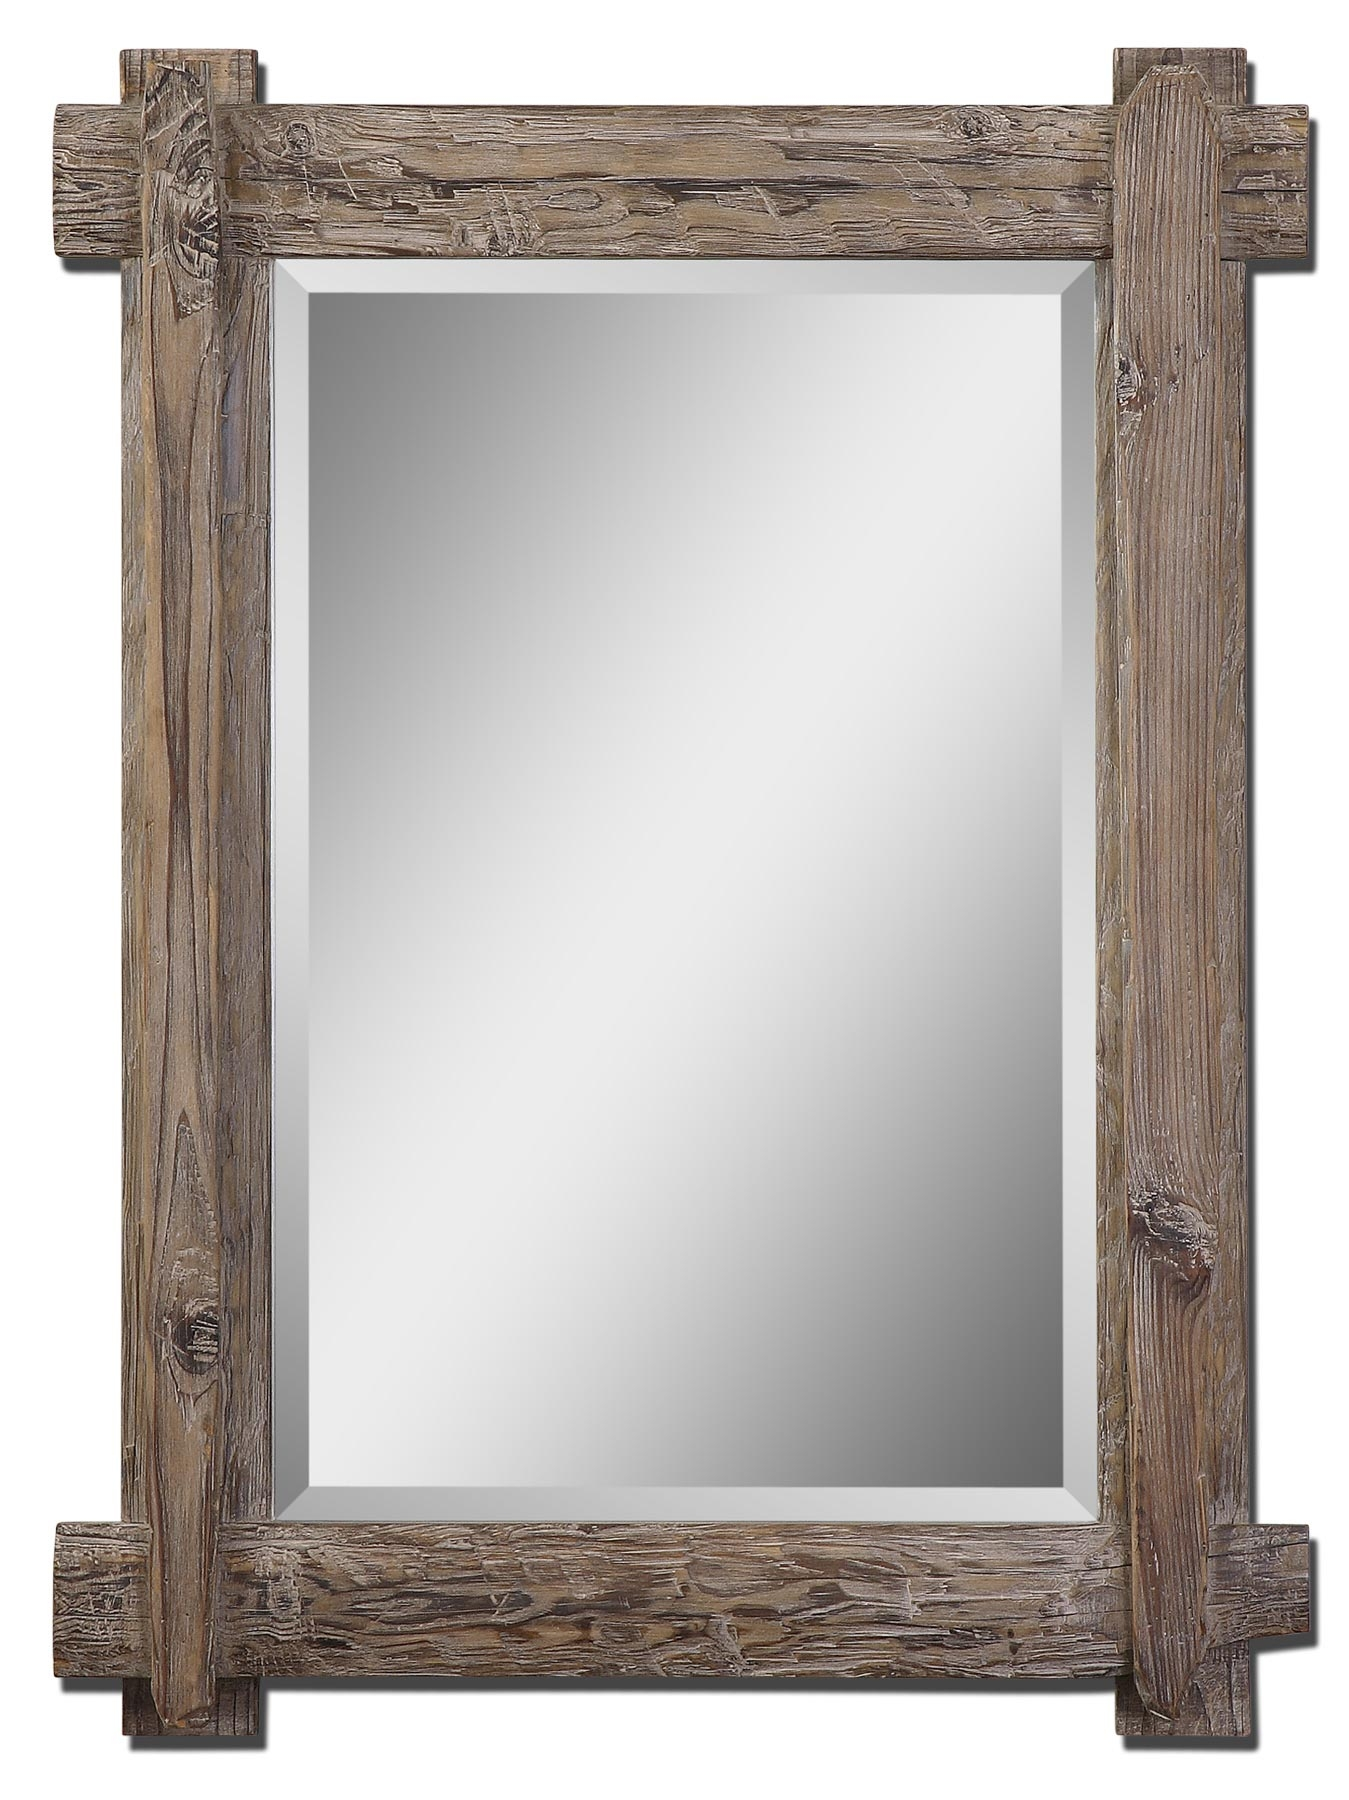 Rustic Wood Framed Wall Mirror